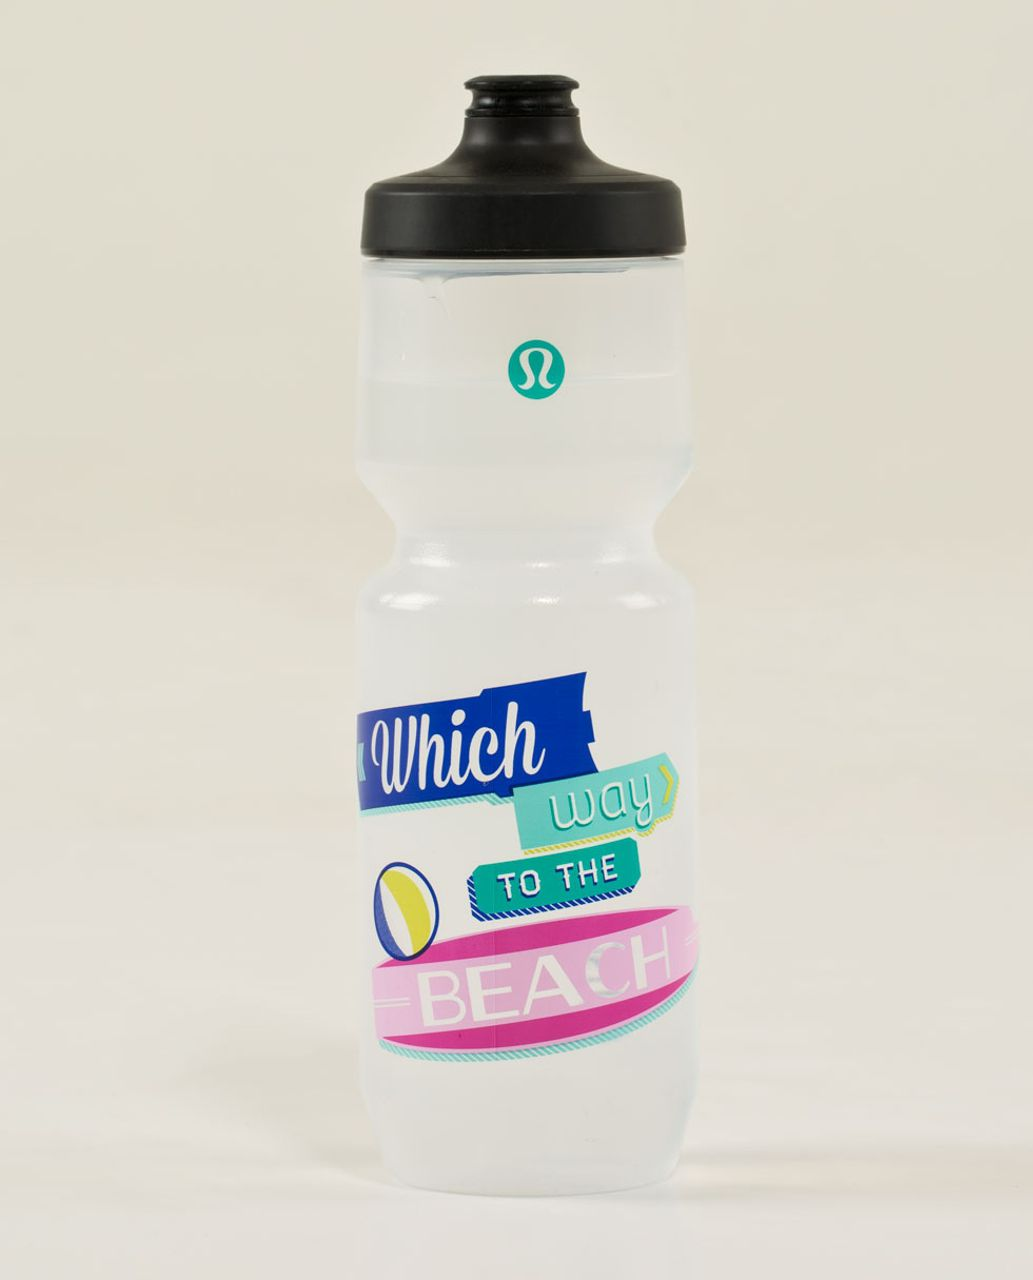 Lululemon Purist Cycling Water Bottle II - Which Way To The Beach Lakeside Blue